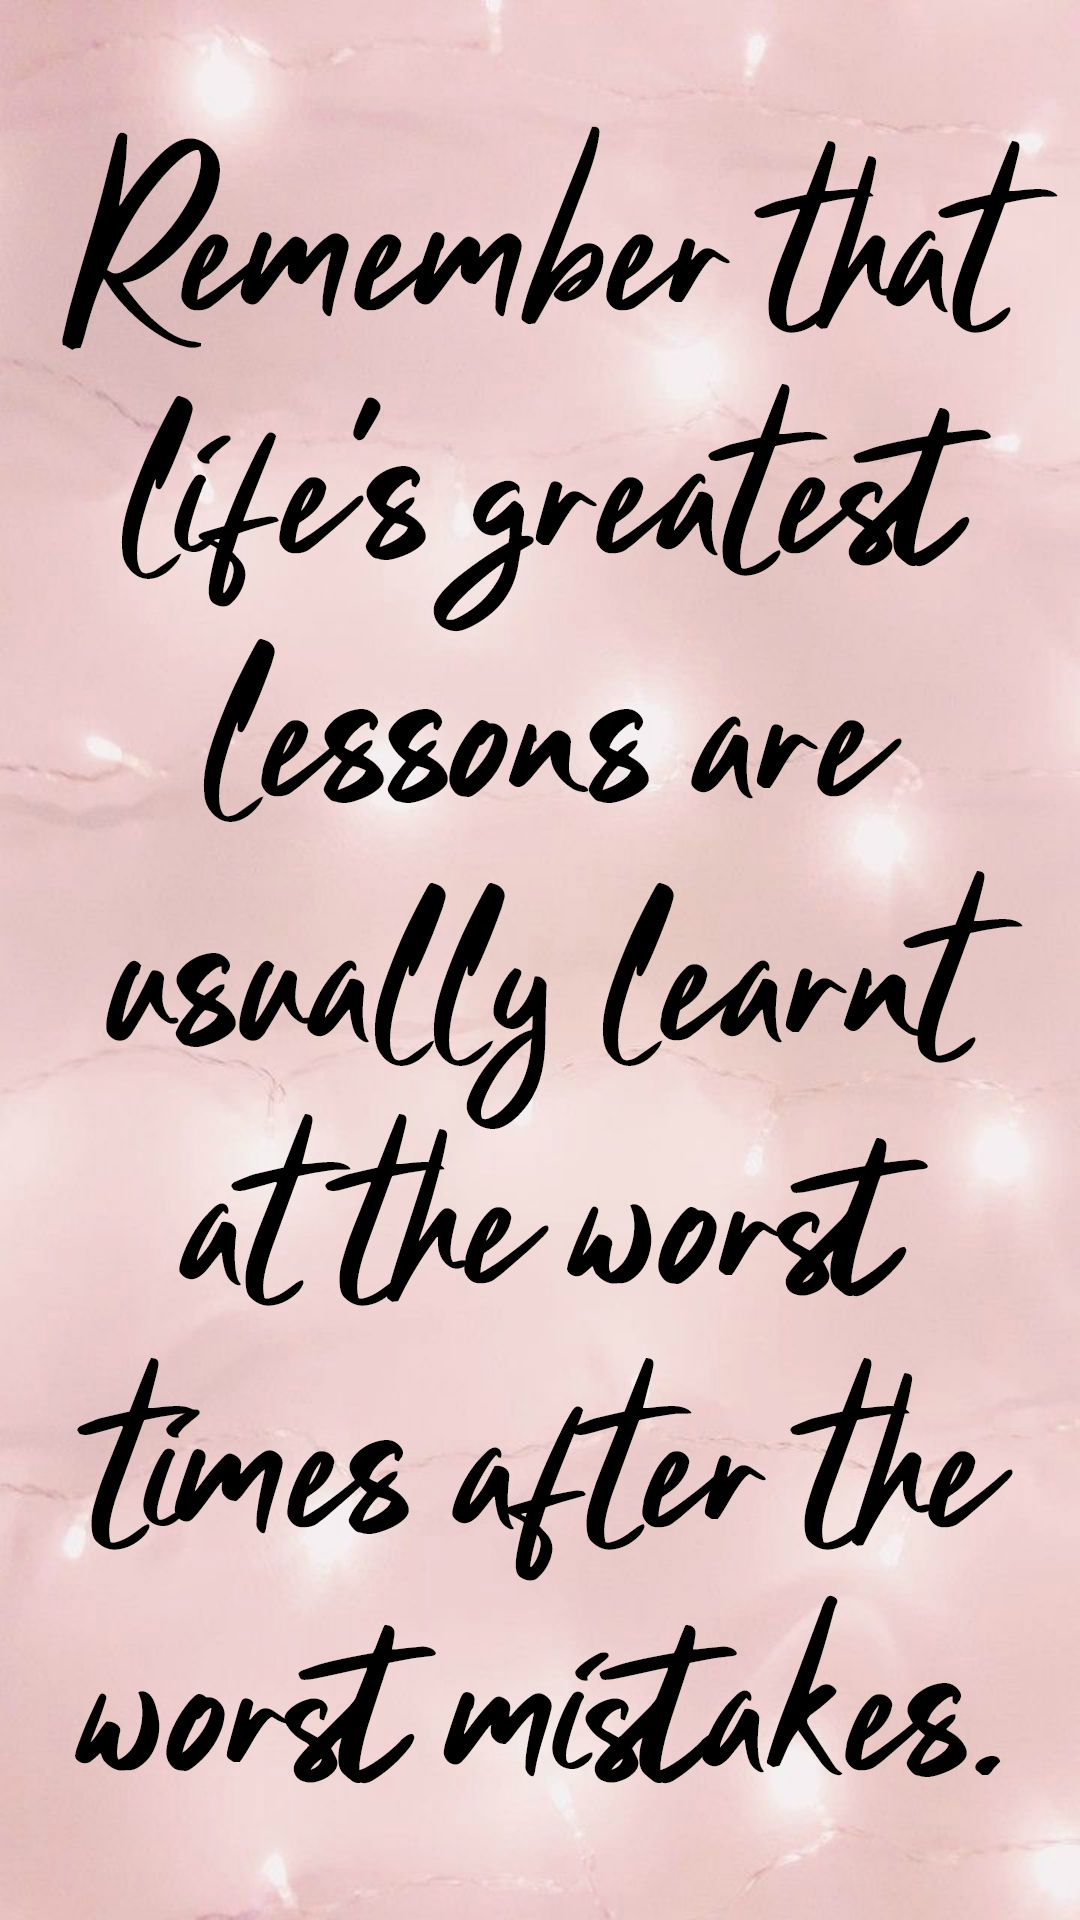 Remember That Life S Greatest Lessons Are Usually Learnt At The Worst Times After The Worst Mistakes 50 Free In 2020 Life Quotes Meaningful Quotes Wallpaper Quotes